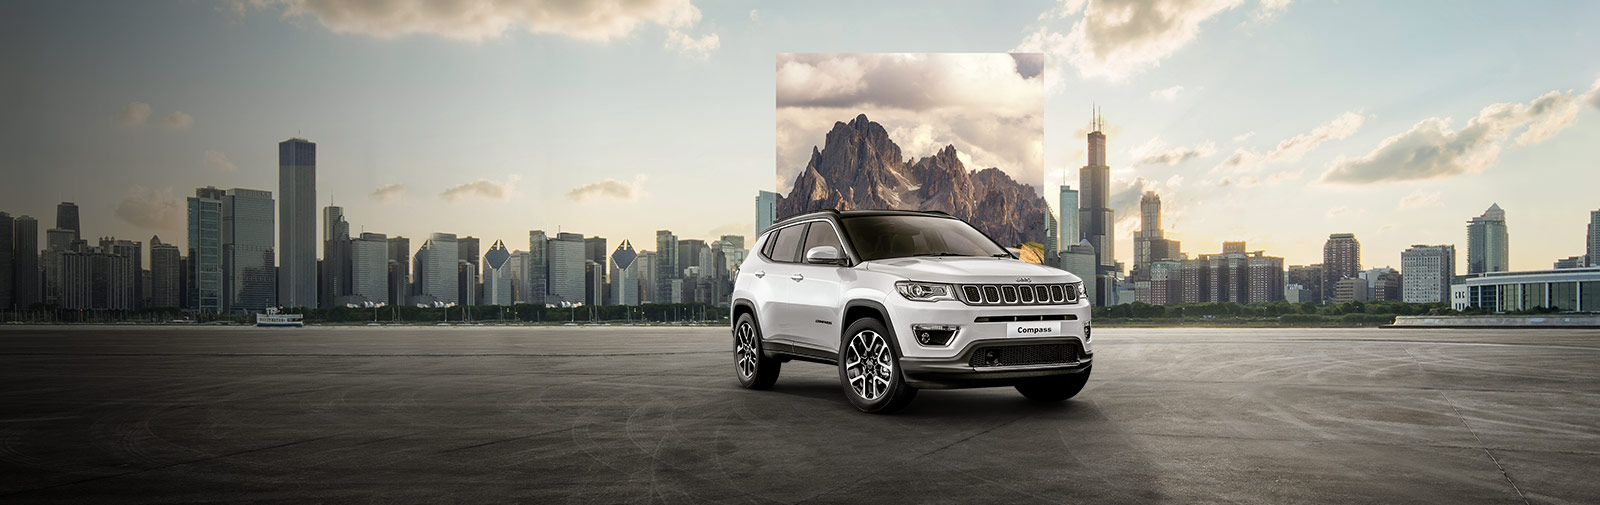 Offres Jeep® Compass | Reprise + 4,000€ | Promotions Jeep®